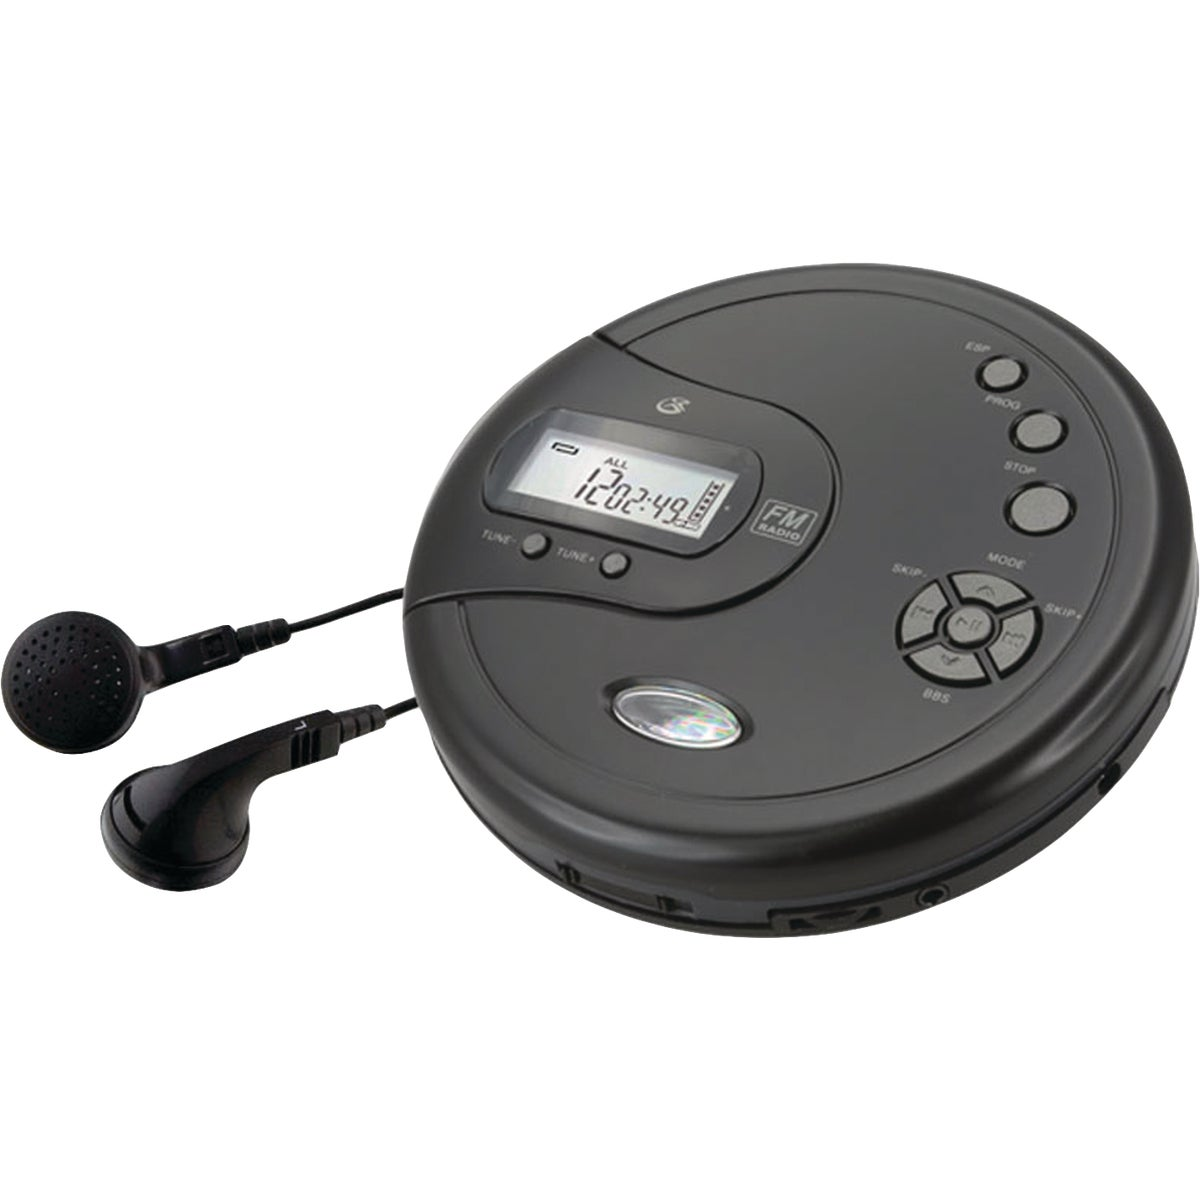 PERSONAL CD PLAYER - PC101B by Dpi Inc